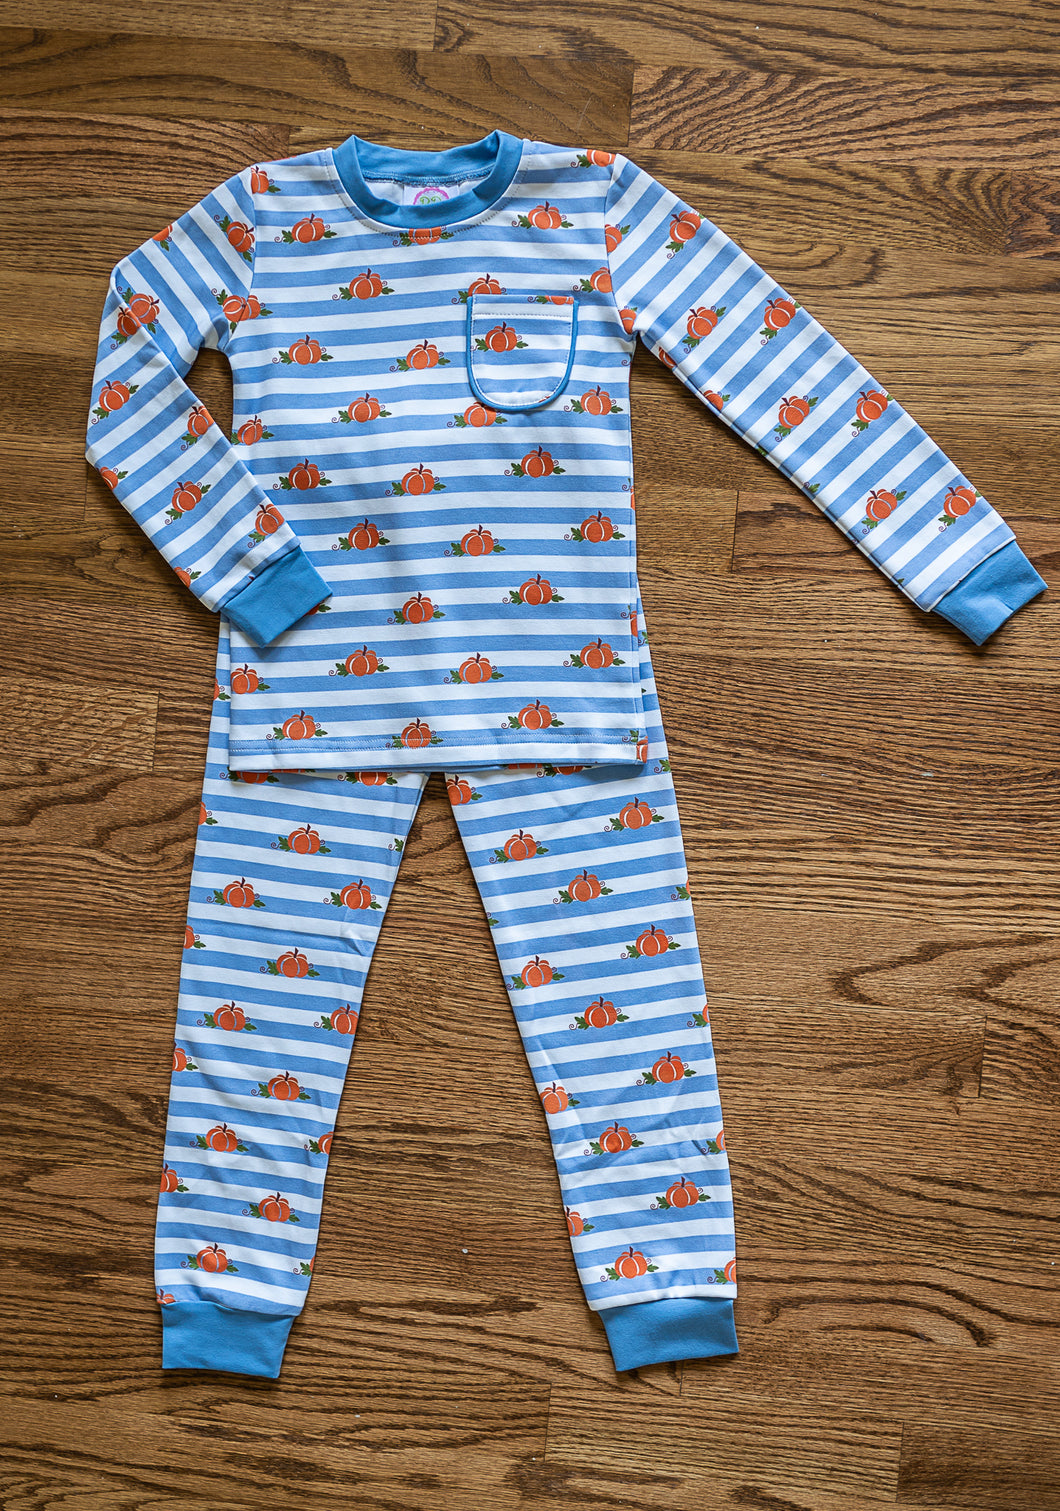 Boys Blue Striped Pumpkin 2pc PJ's